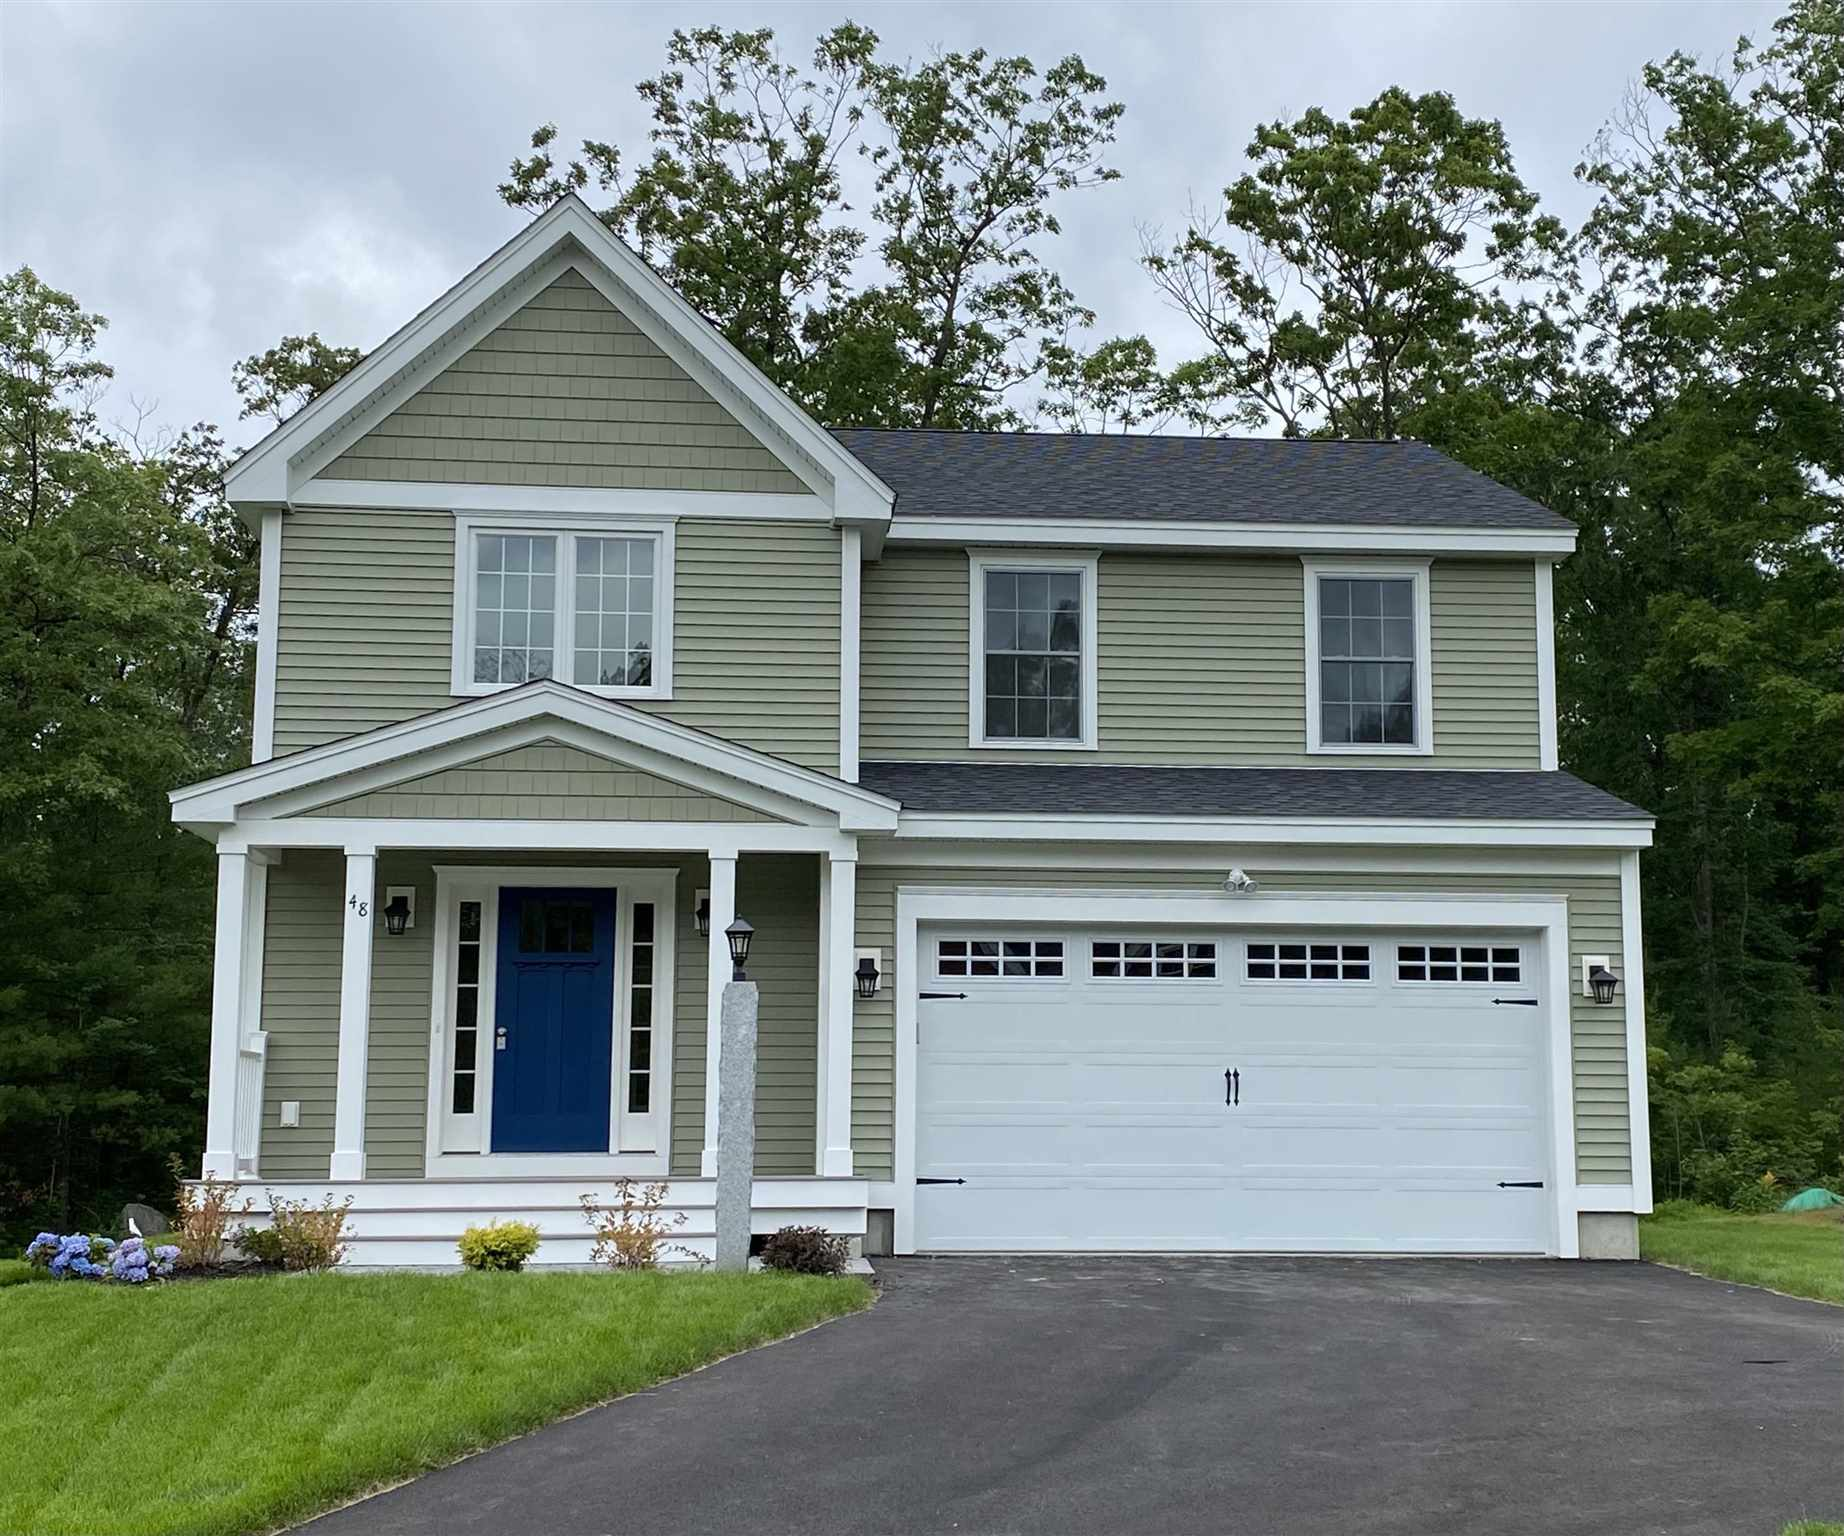 Lot 130 Lorden Commons 130